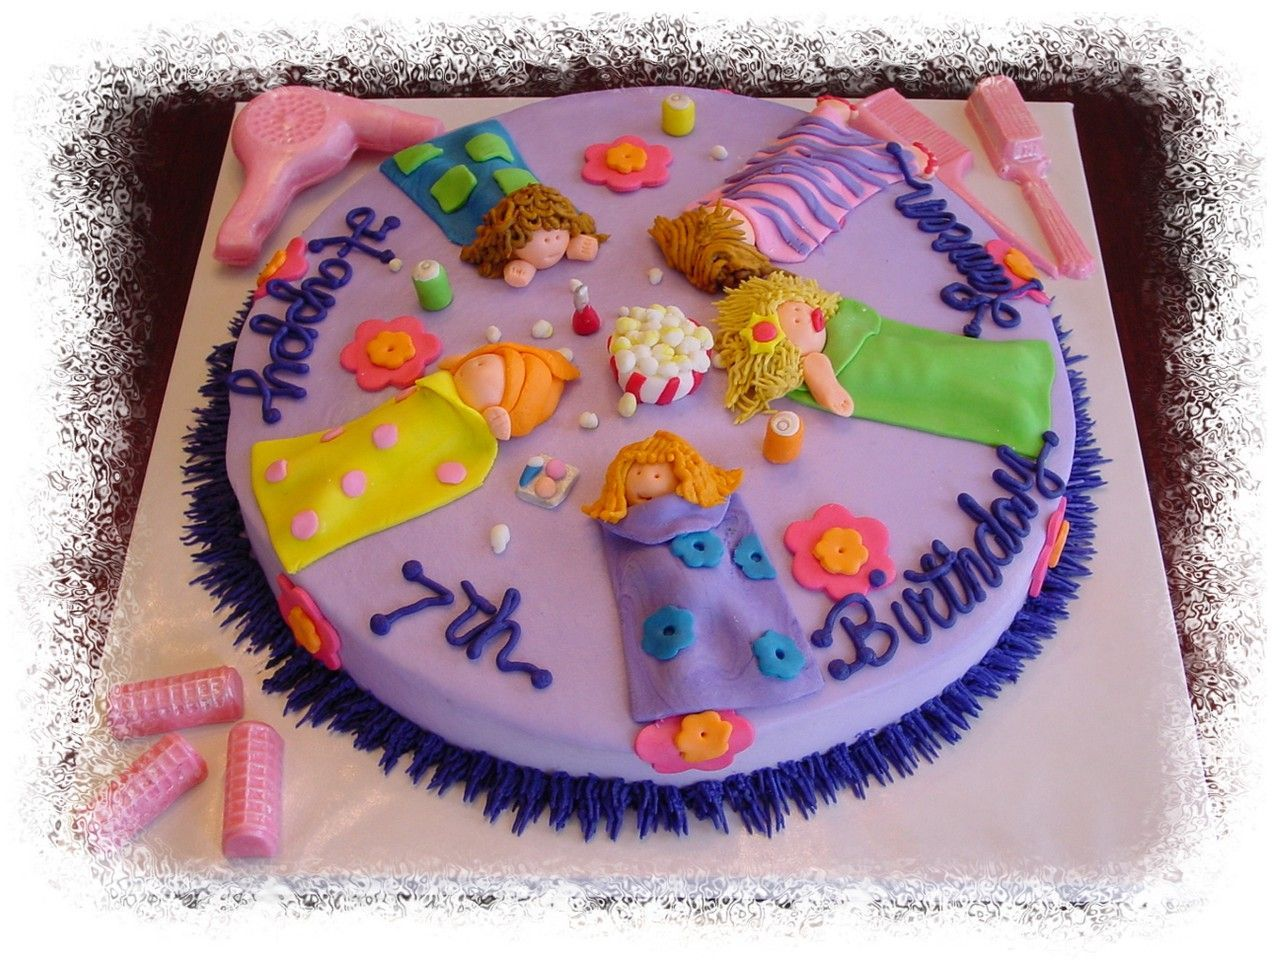 Slumber Party Cakes Pinterest Slumber parties Cake and